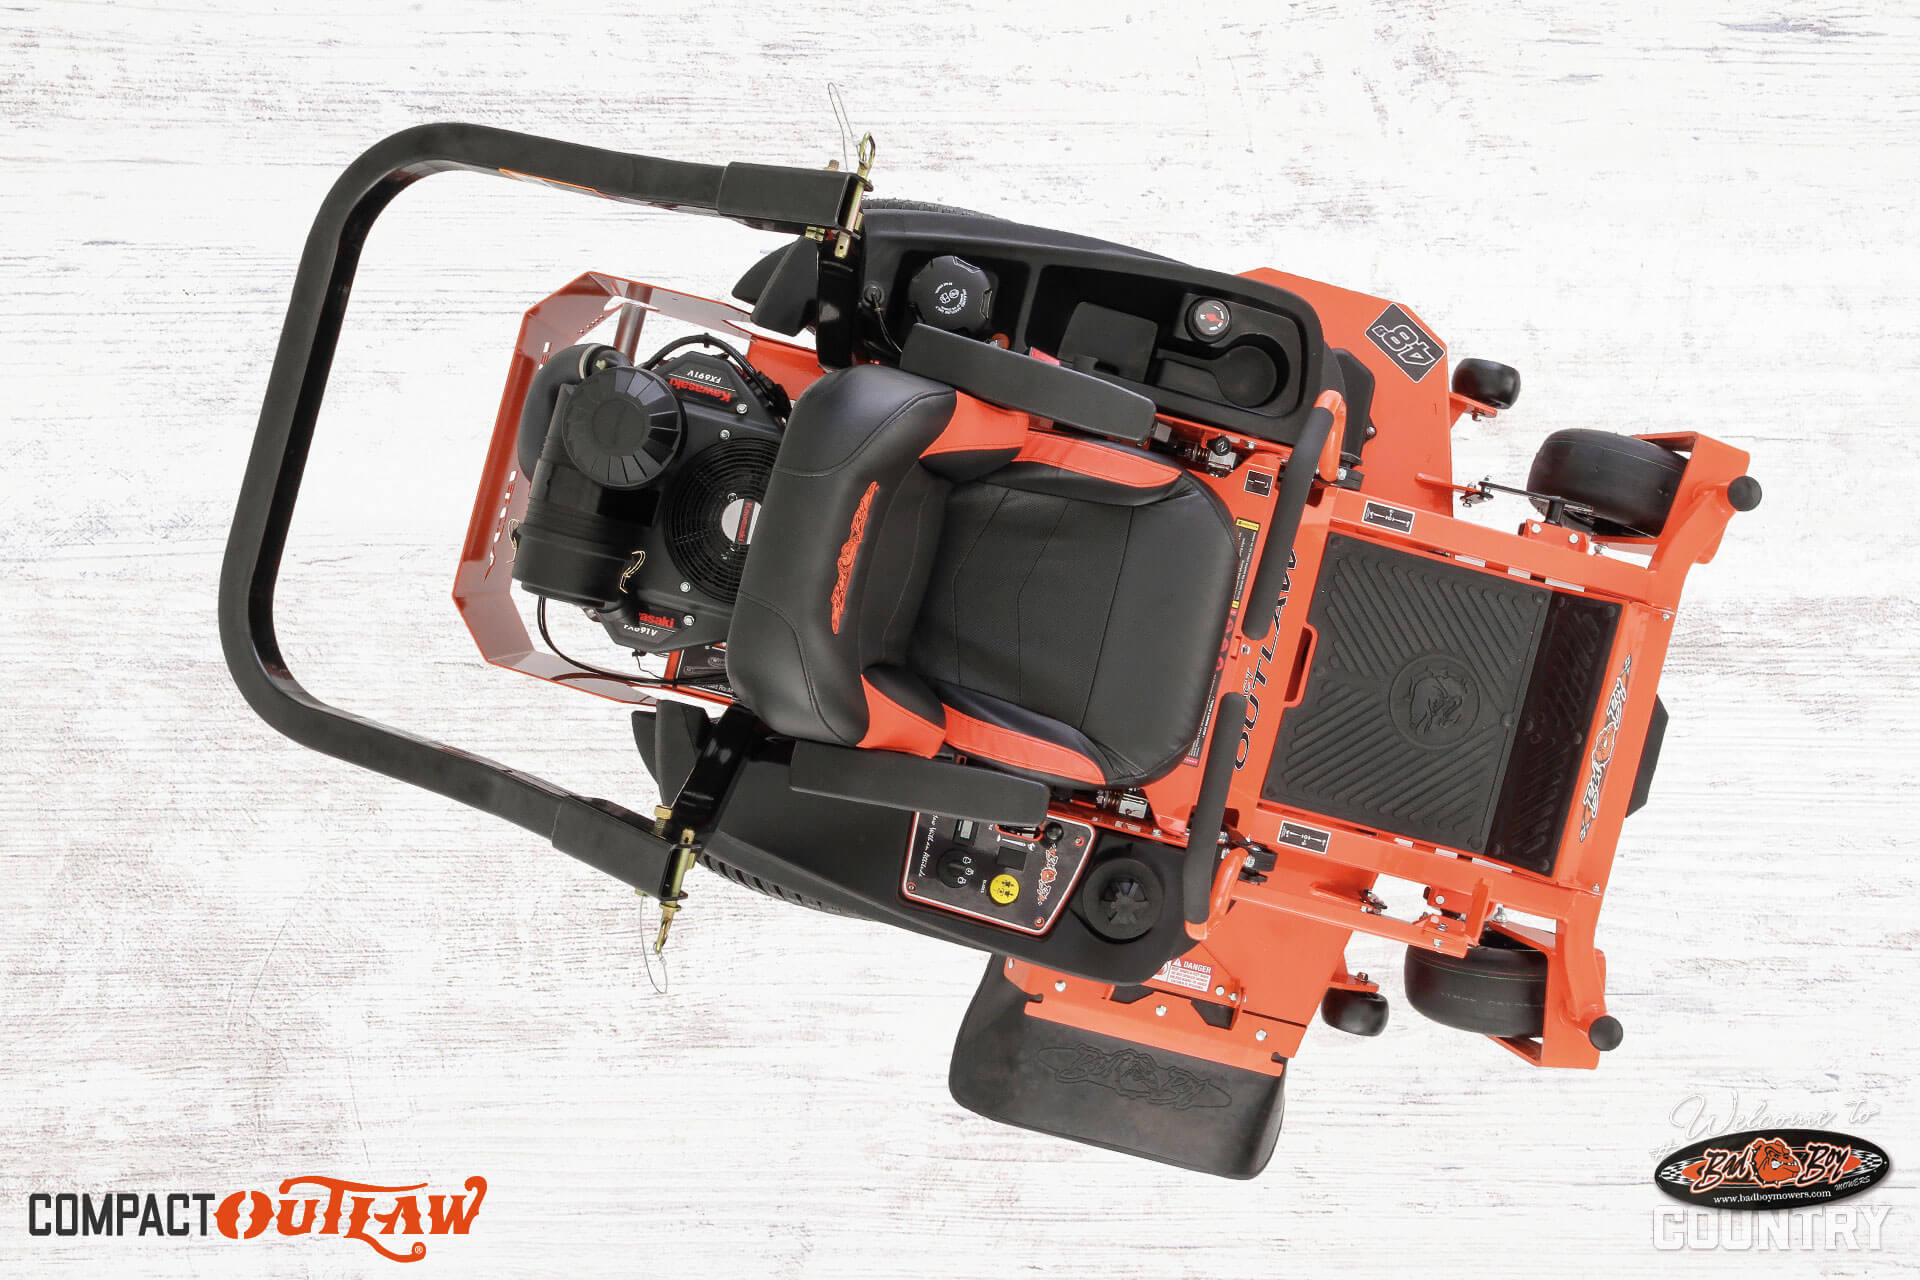 Compact Bad Bad Boy Compact Outlaw Windy Gap Outdoor Power Equipment